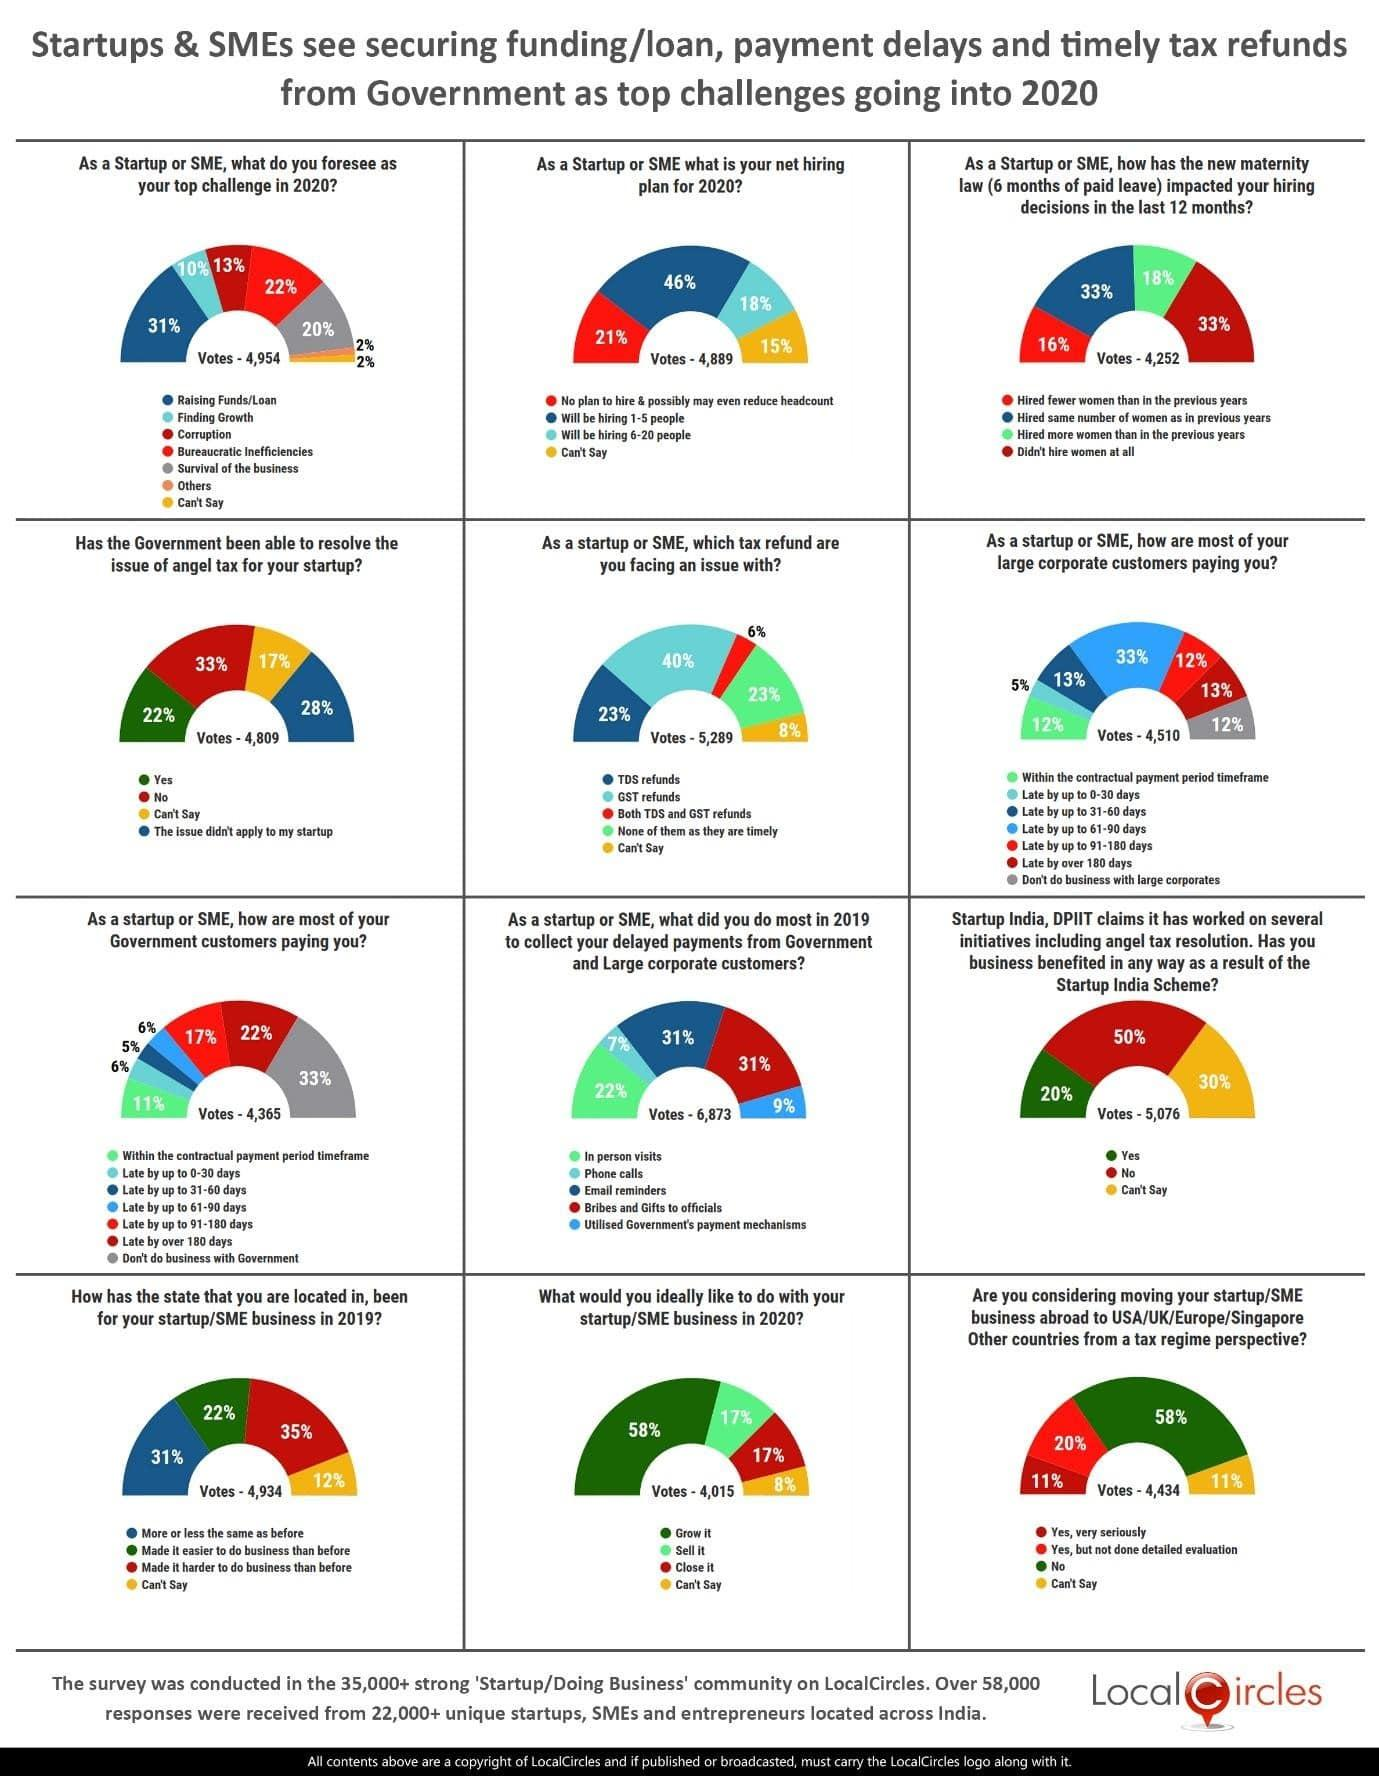 startups-smes-top-challenges-poll-summary_20122019100834.jpg